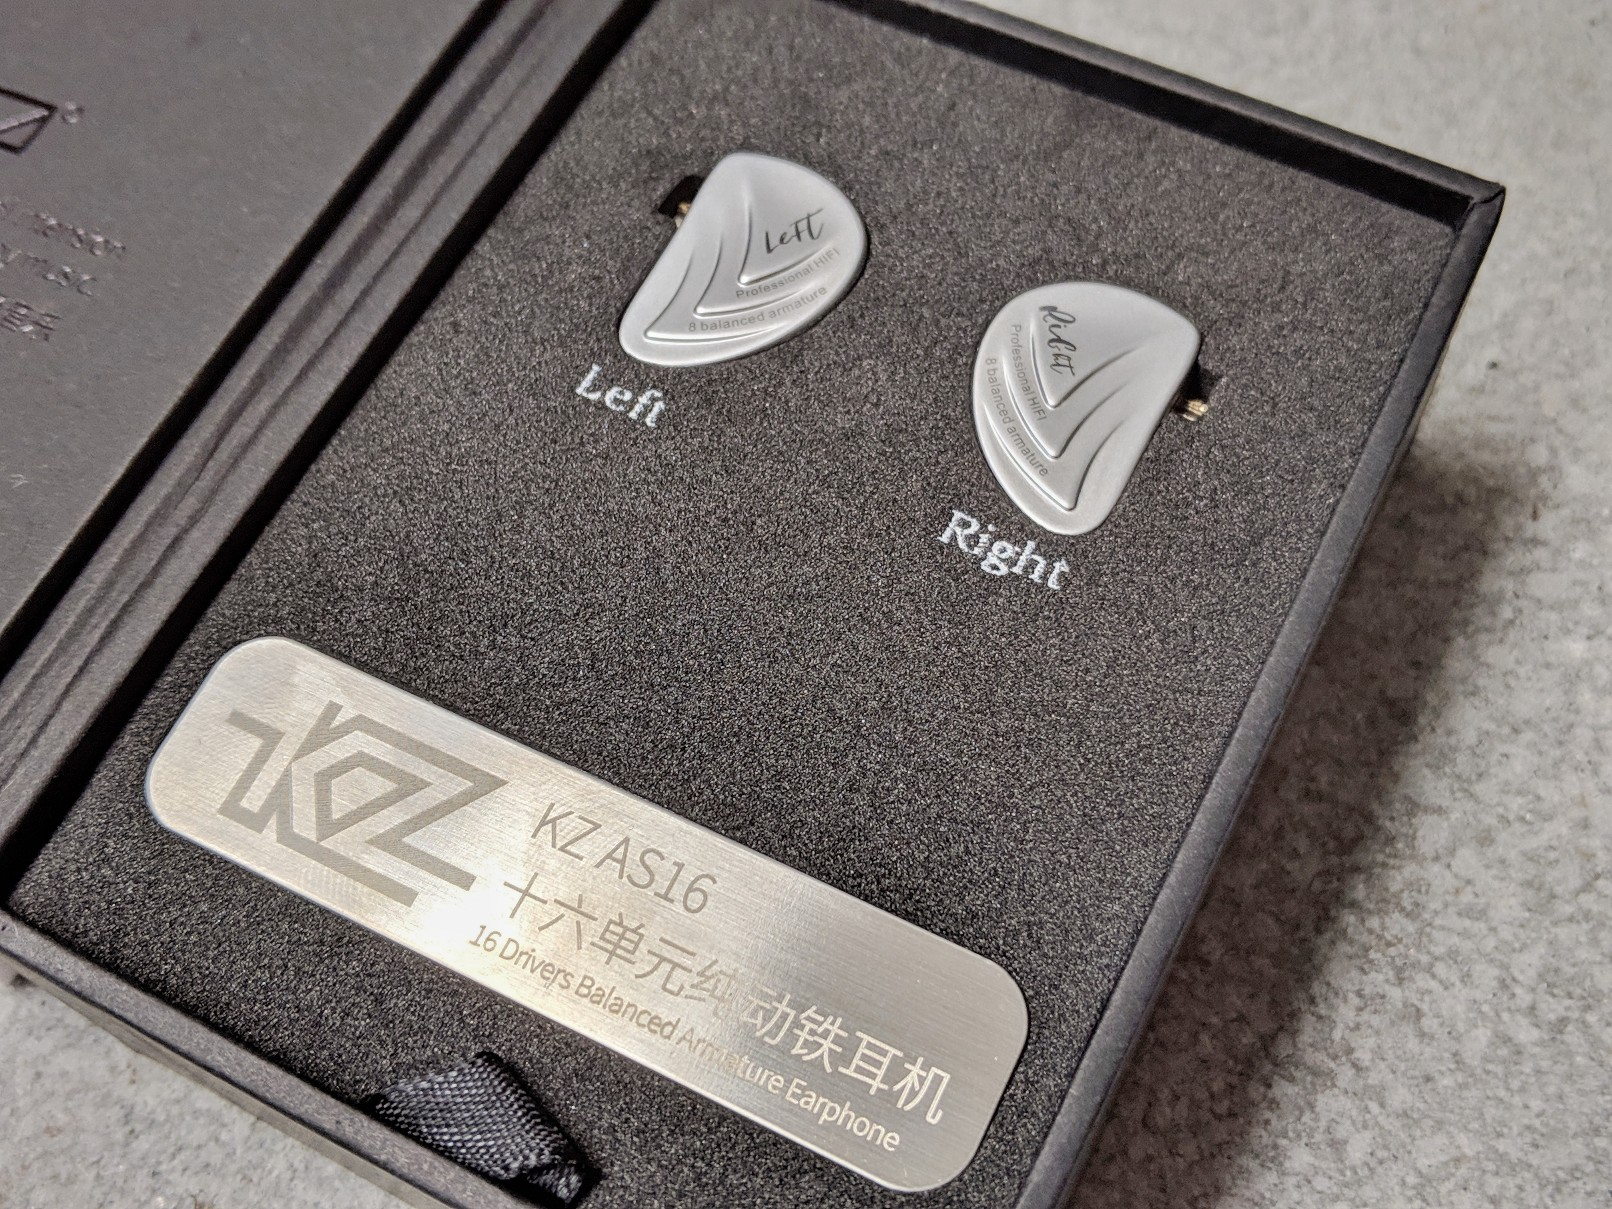 KZ AS16 box and packaging.